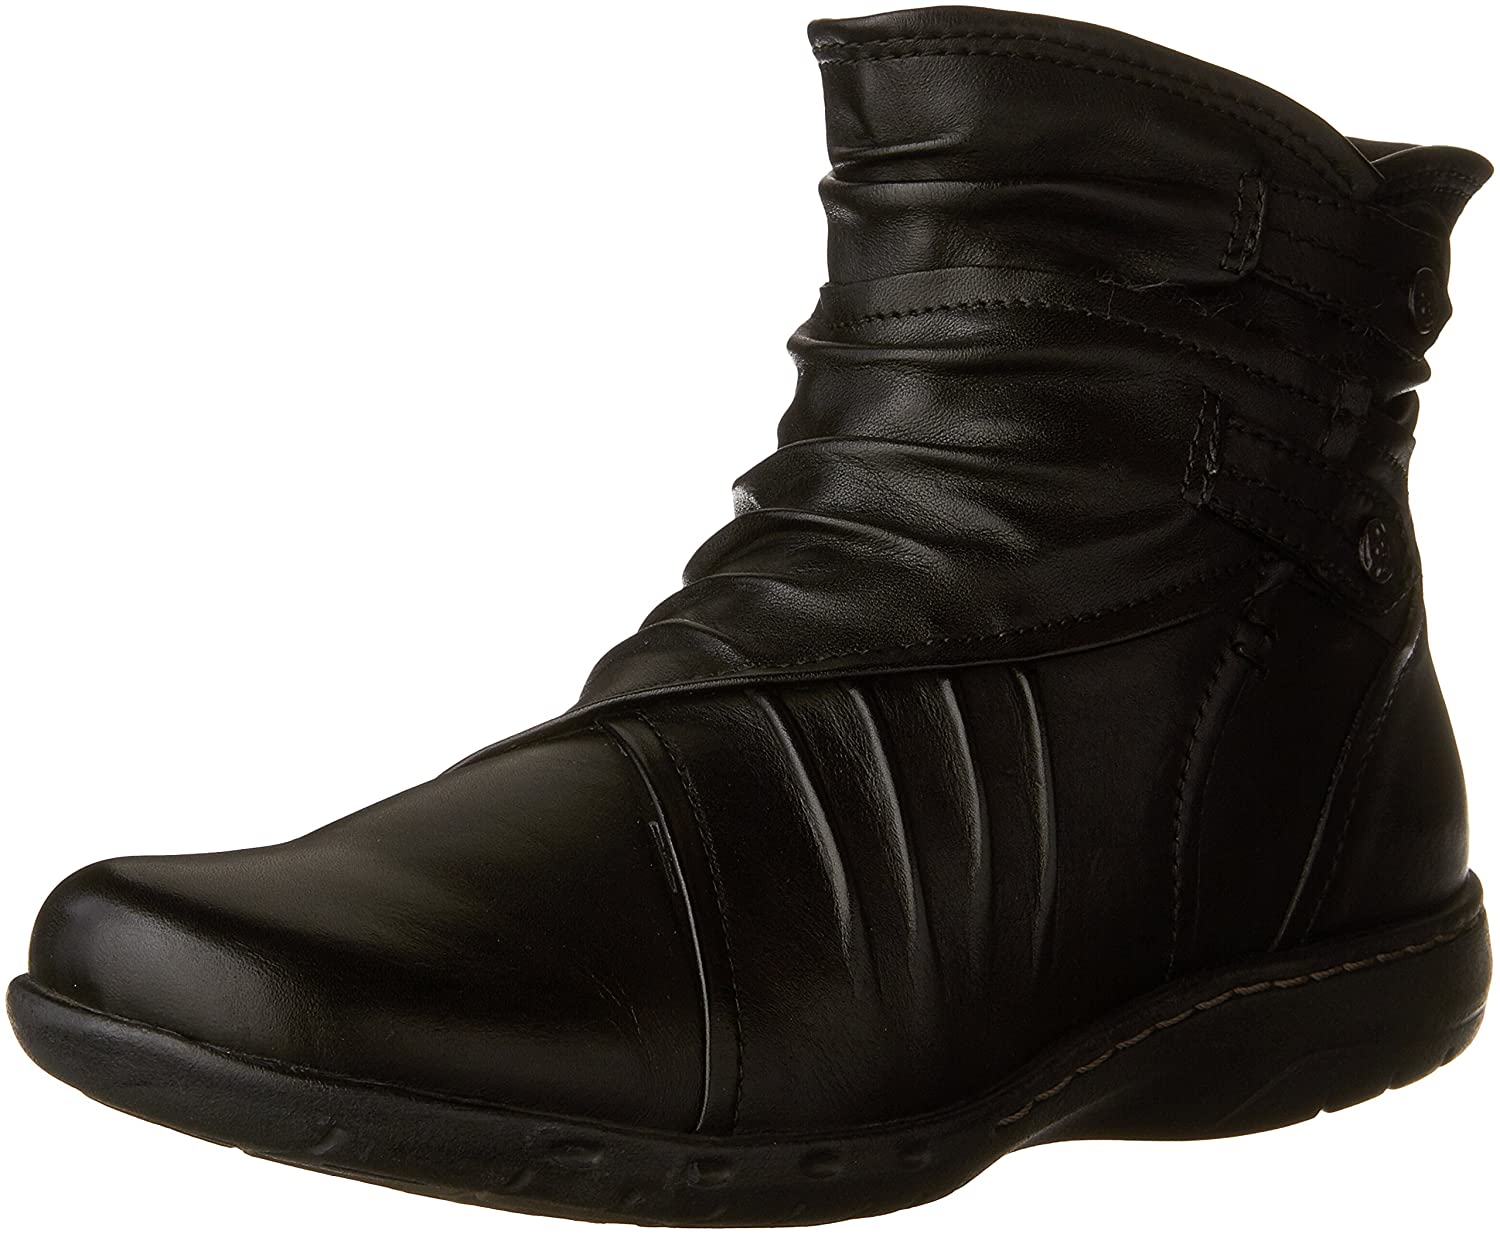 Cobb Hill Rockport Women's Pandora Boot B00B9FXHMI 6.5 B(M) US|Black